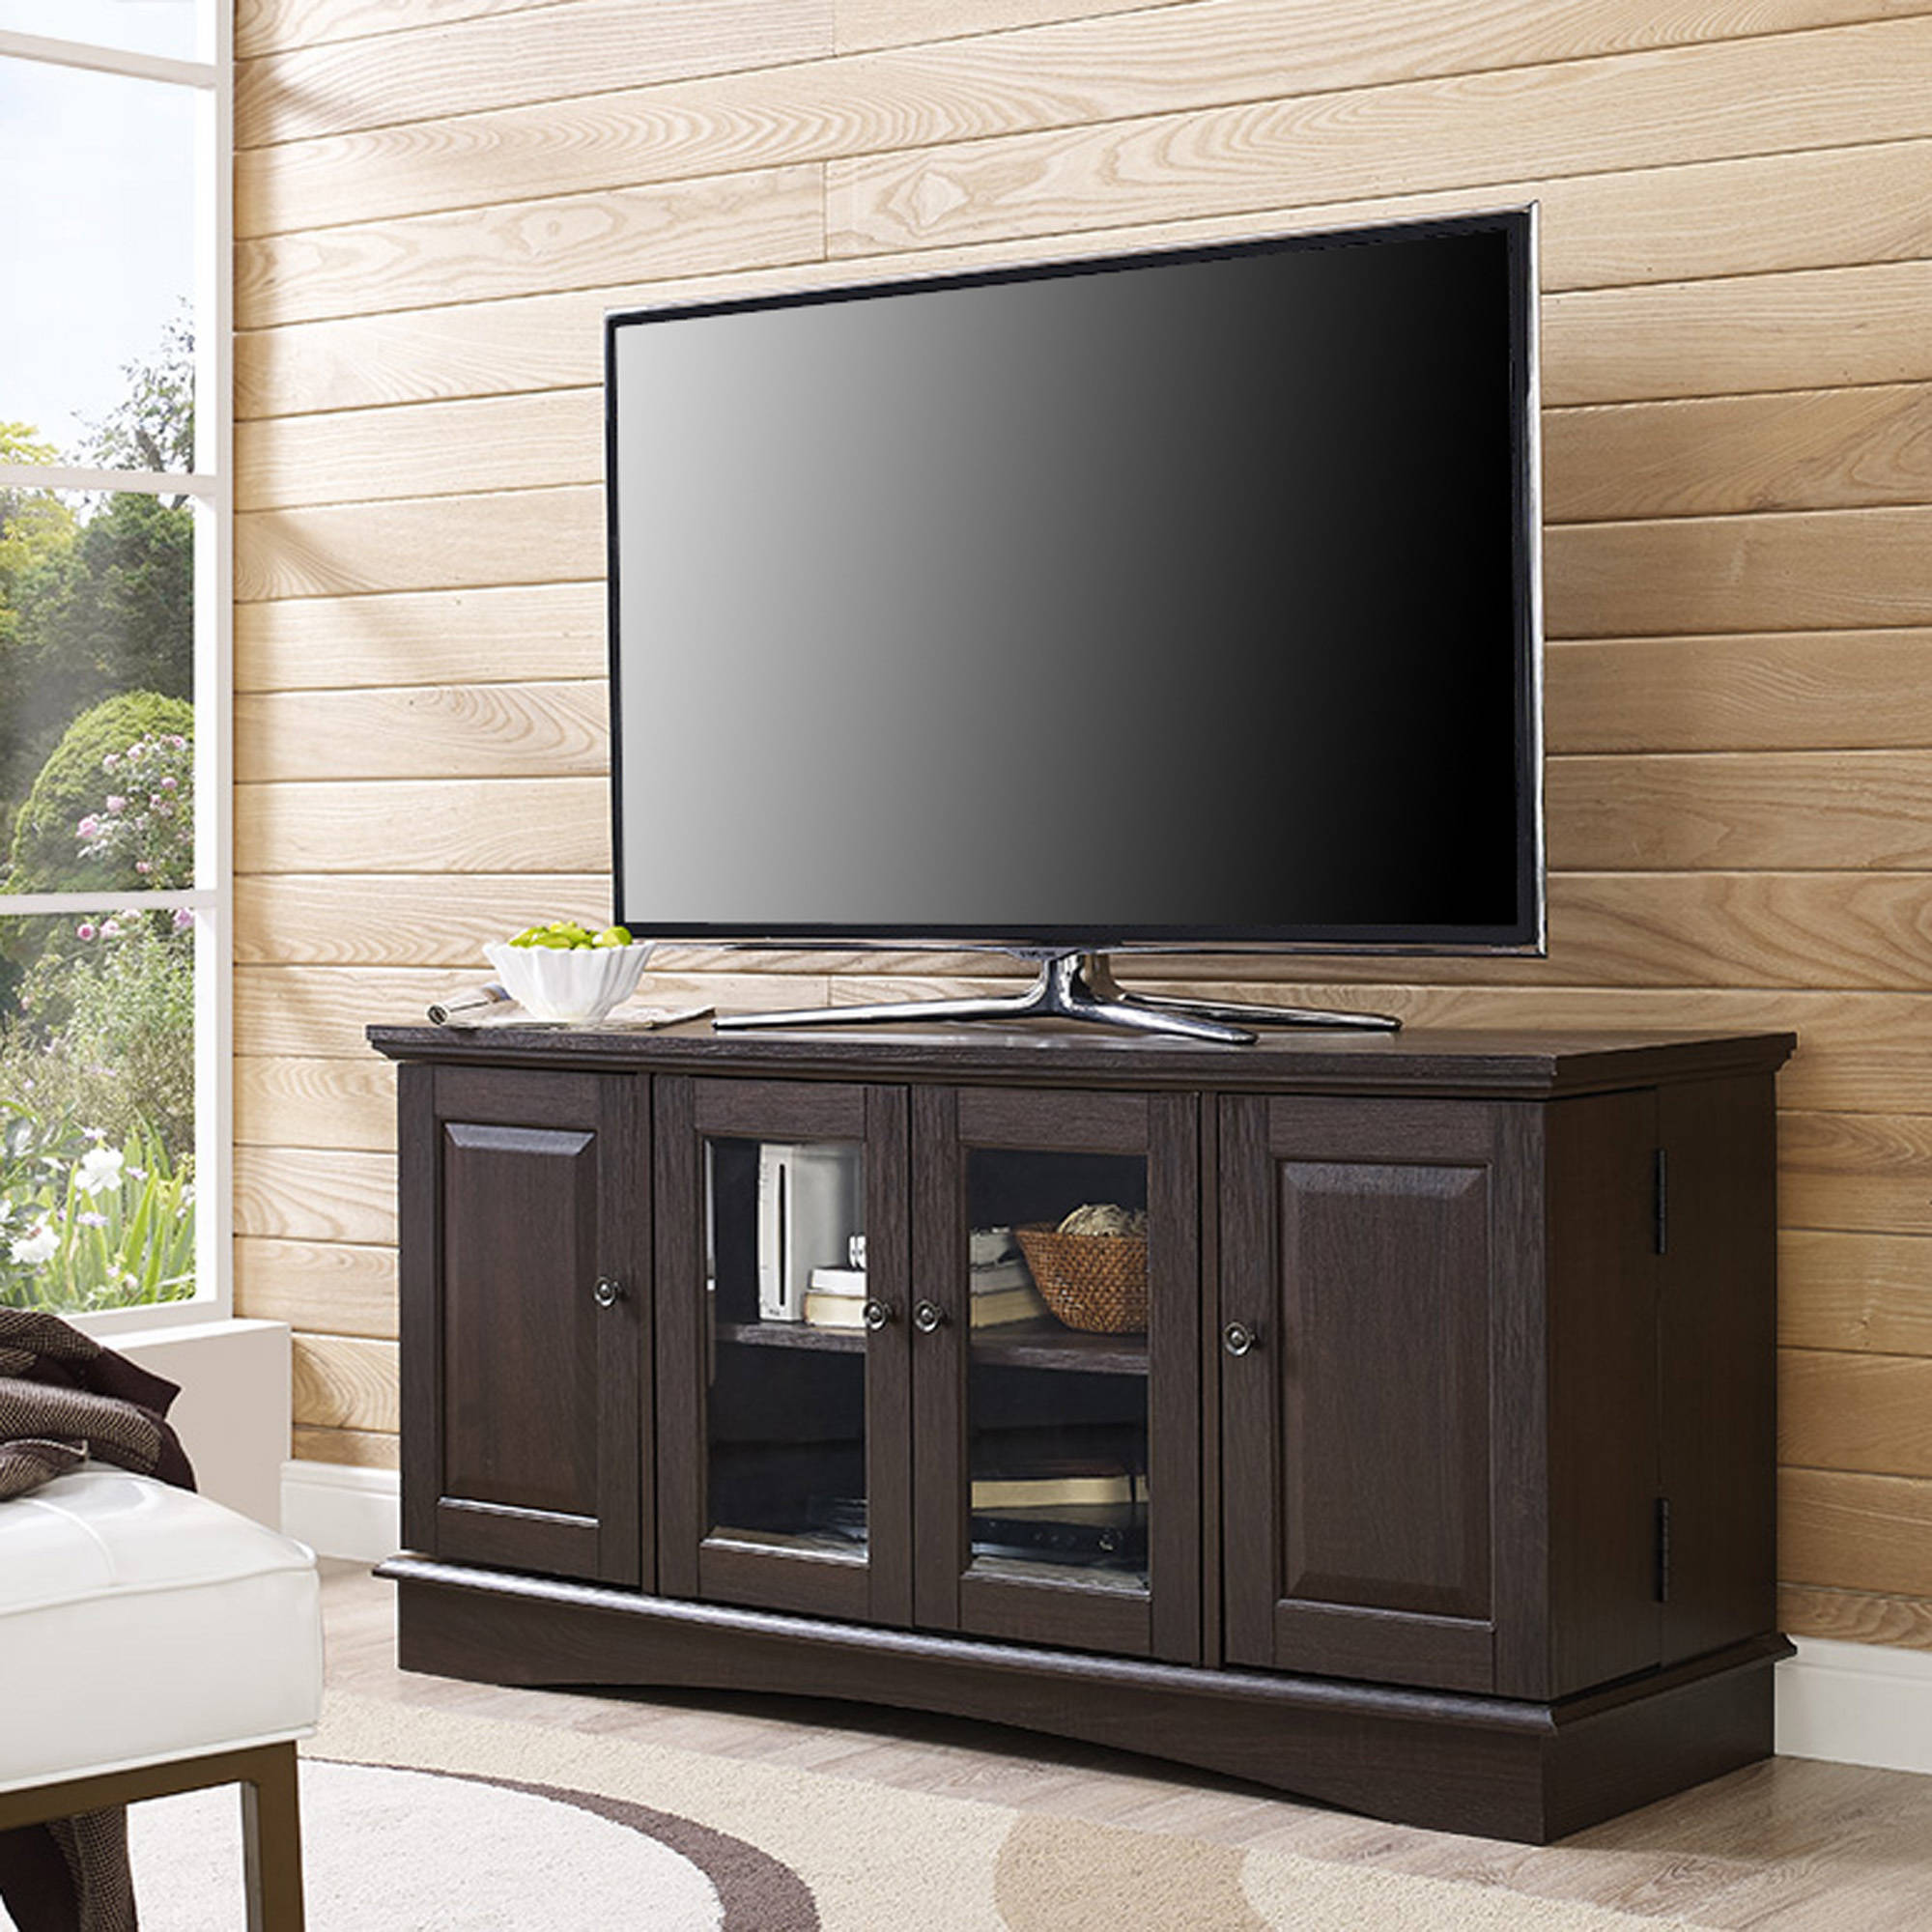 Espresso Wood TV Stand for TVs up to 55